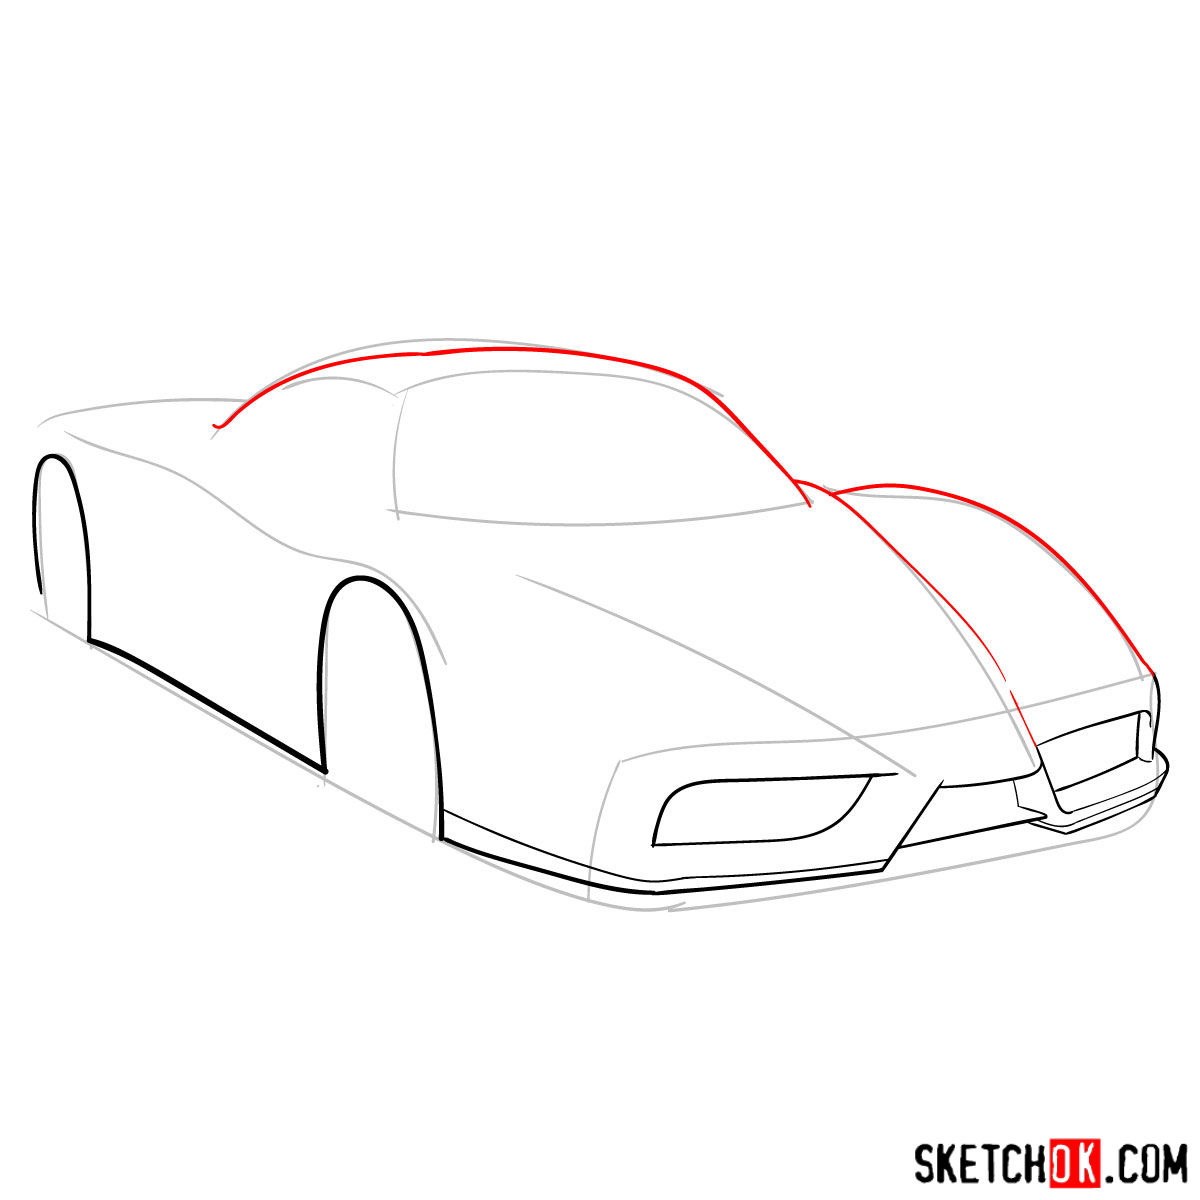 How to draw Ferrari Enzo legendary supercar - step 04